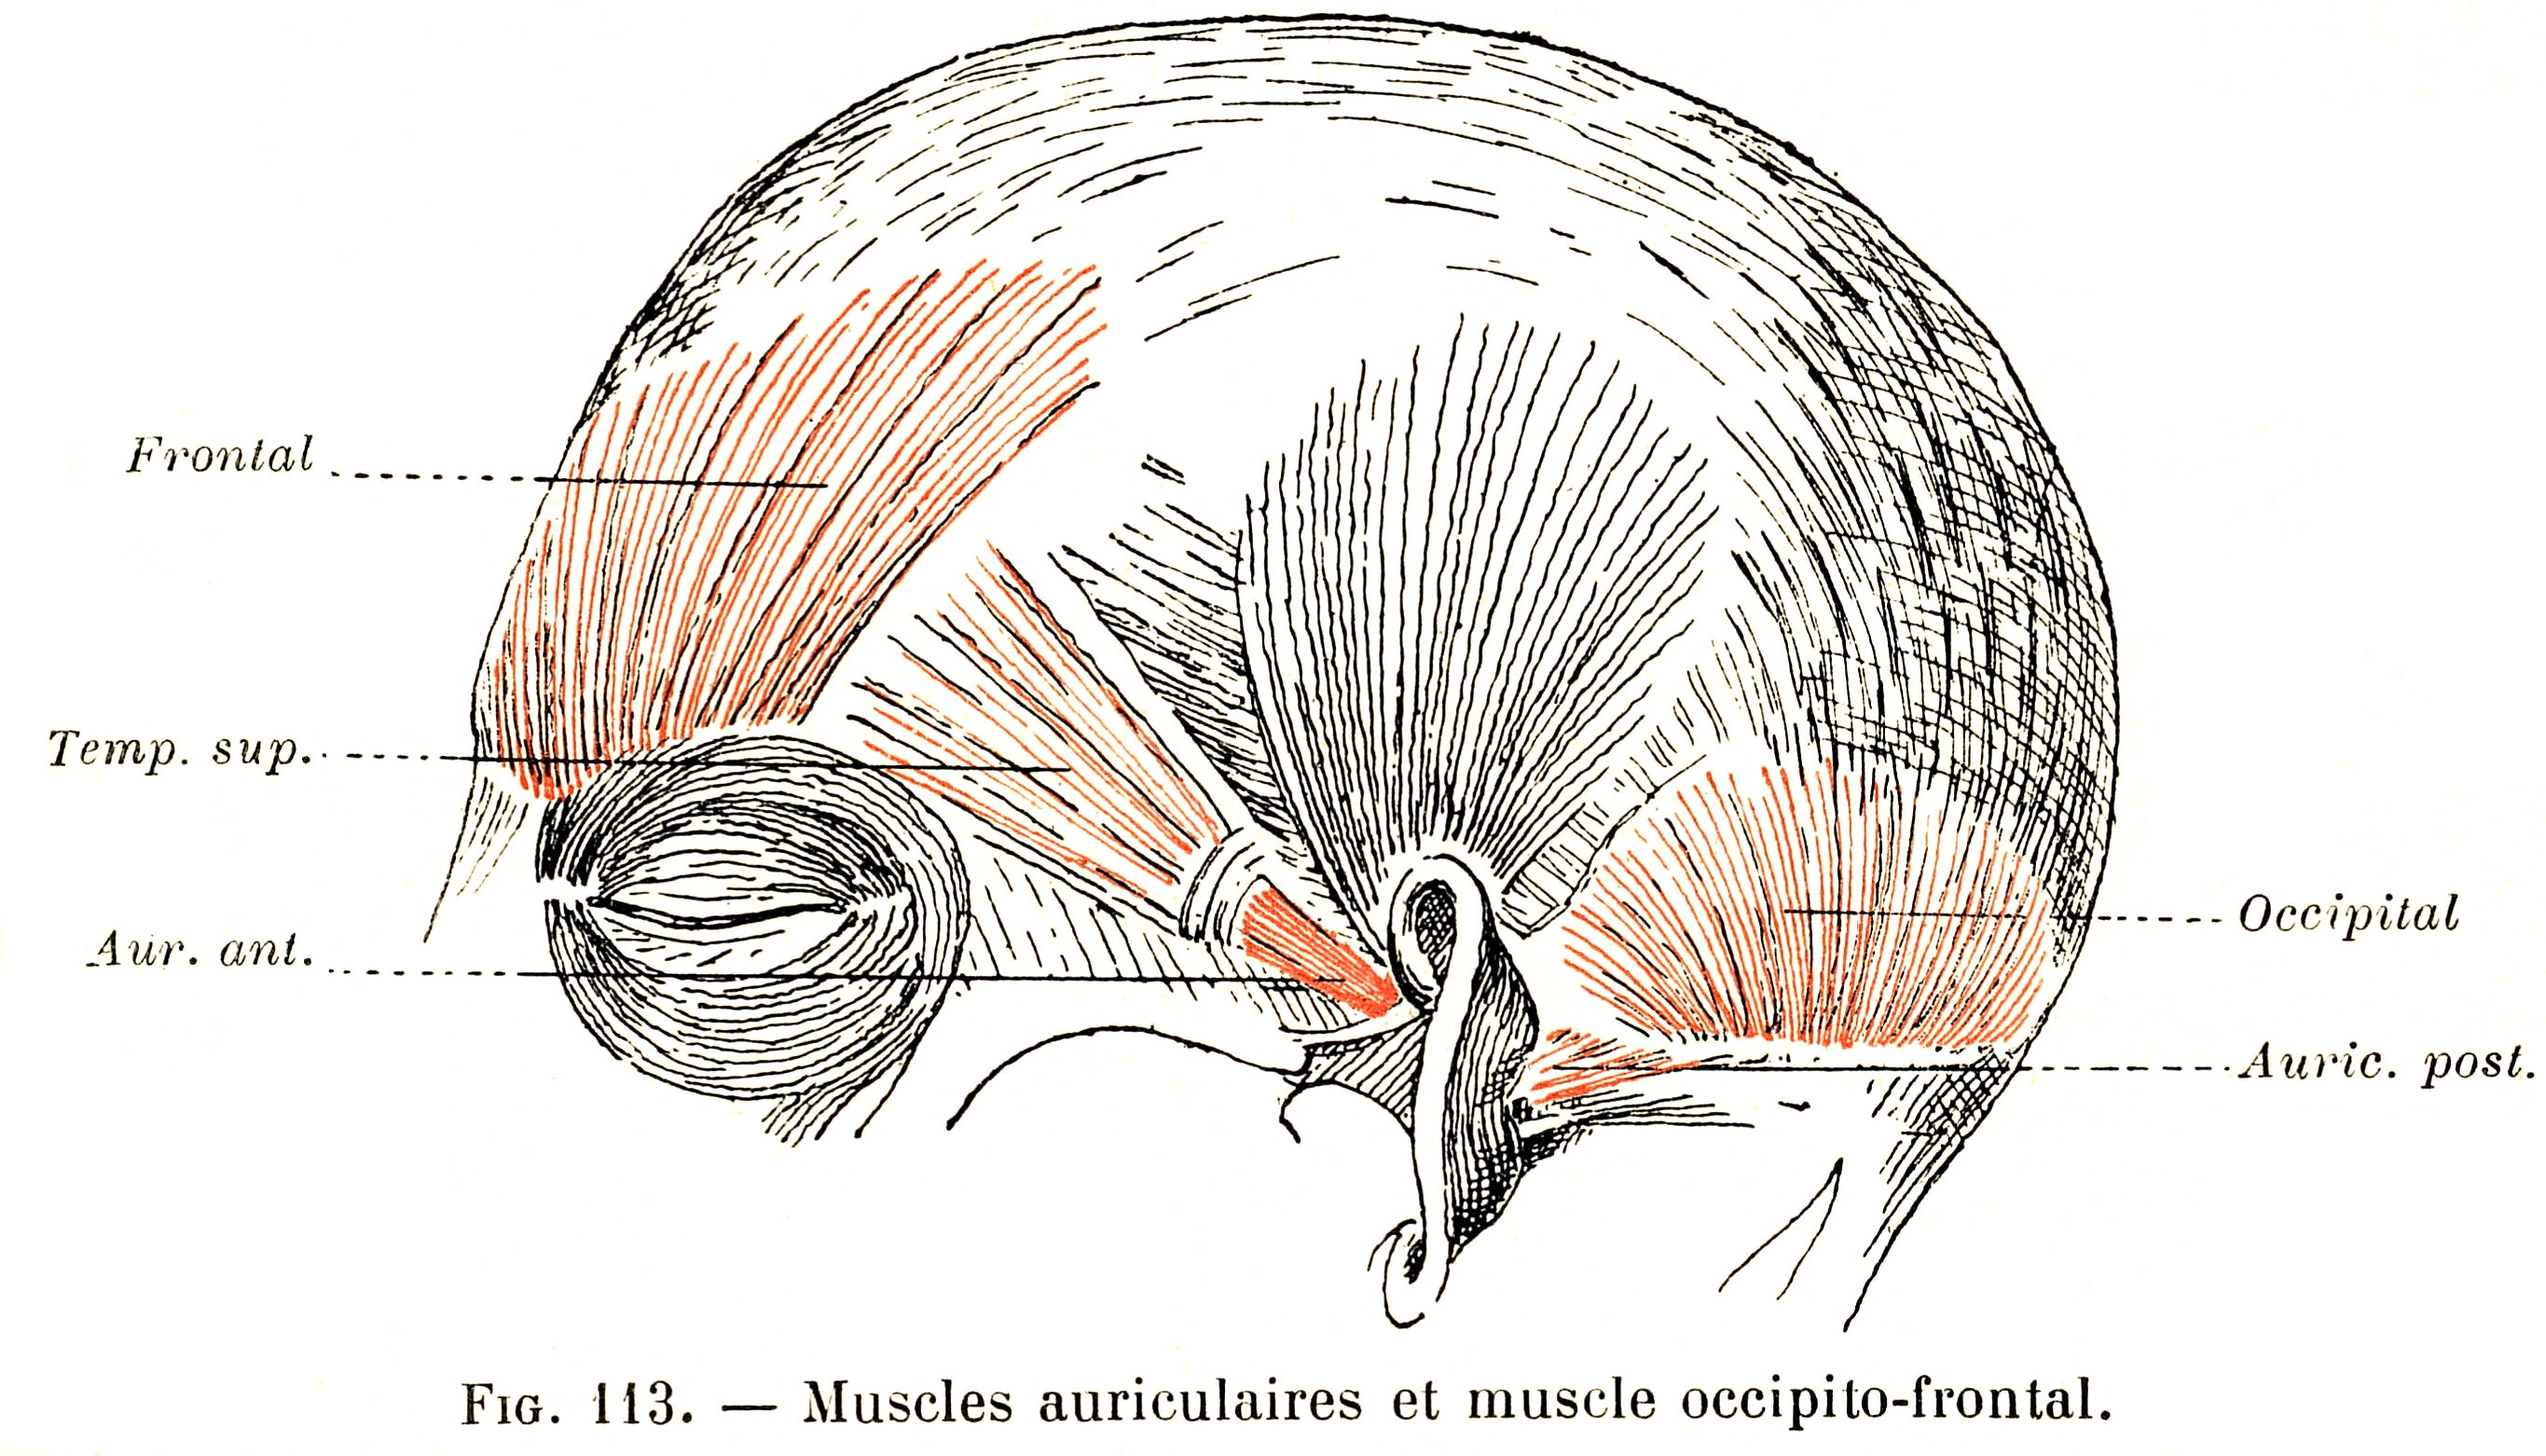 113 Auricular Muscles And The Occipito Frontalis Muscle